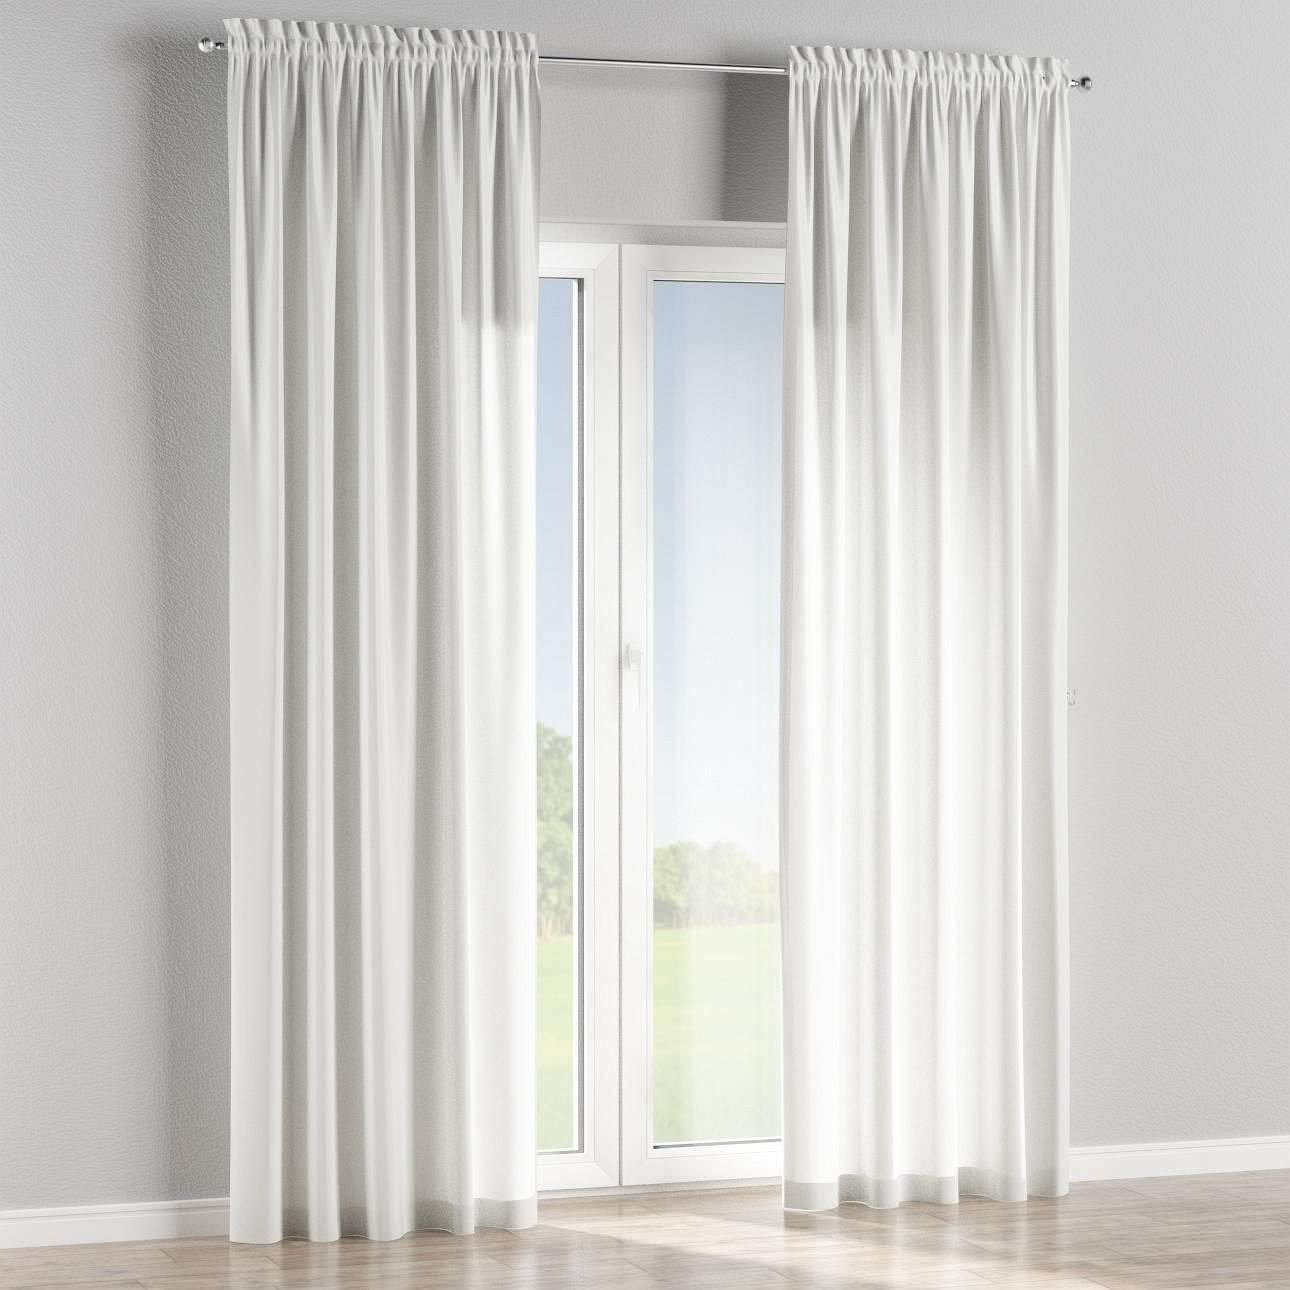 Slot and frill lined curtains in collection Victoria, fabric: 130-09